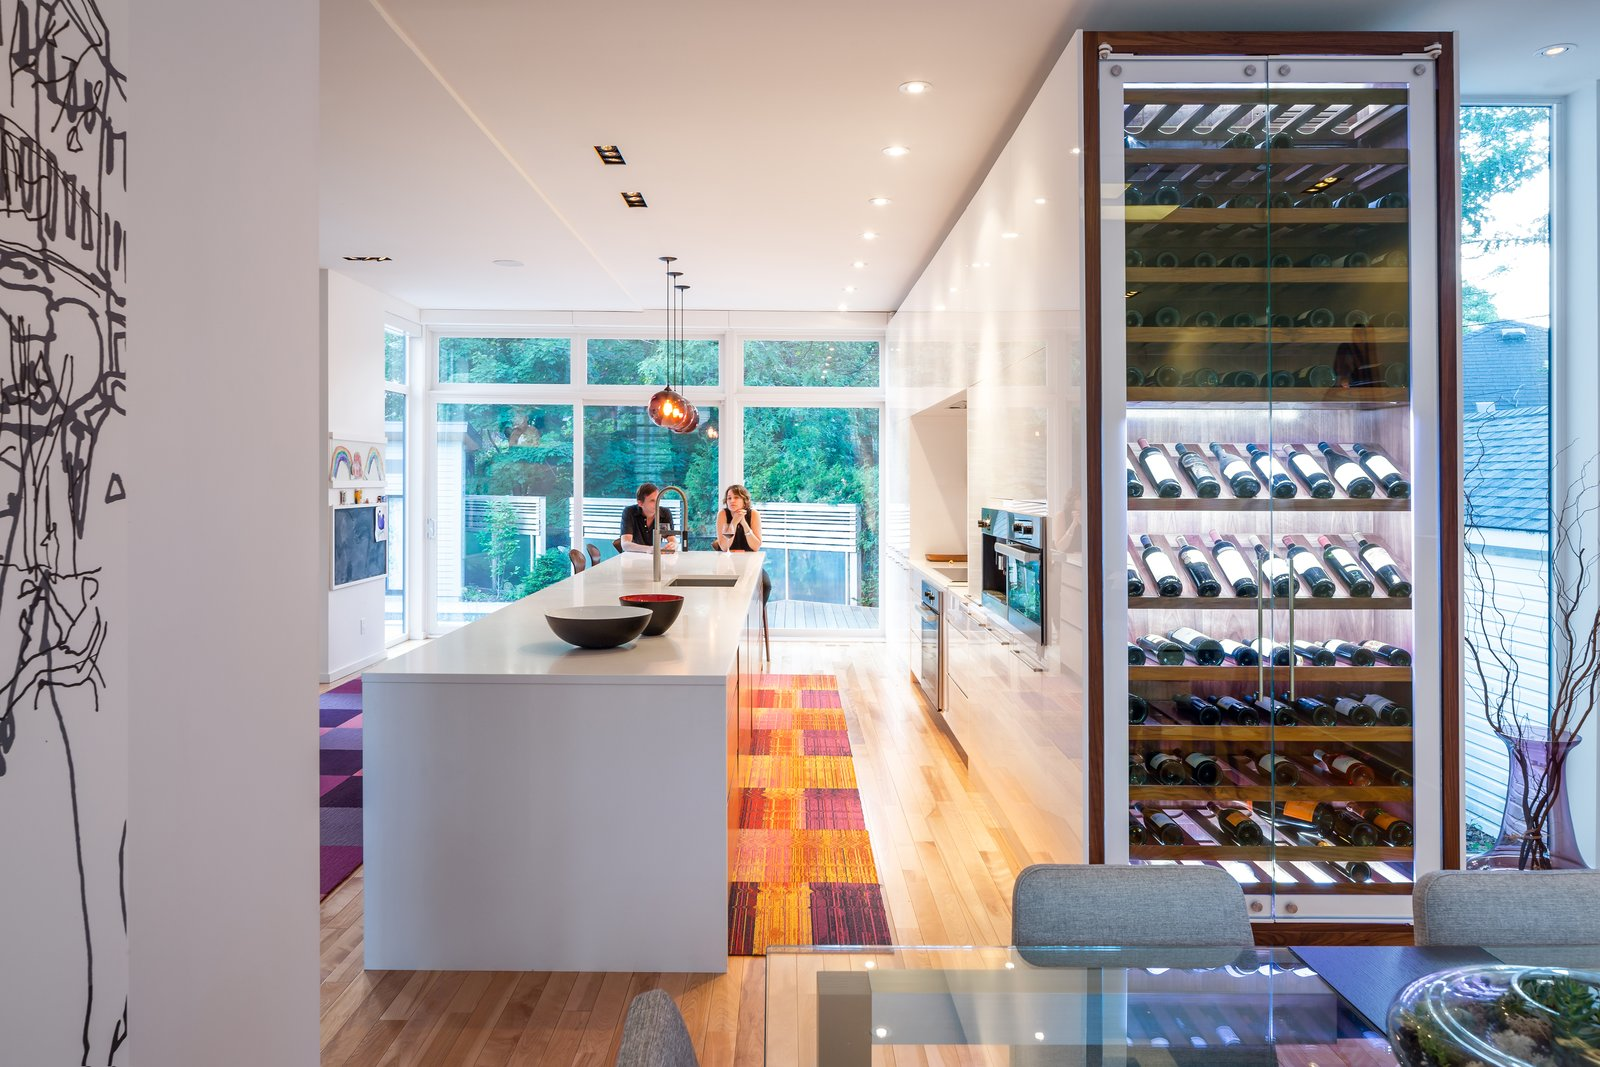 Photo 5 of 5 in Plum Modern Pendant Lighting Adds Pop of Color in Canadian Kitchen